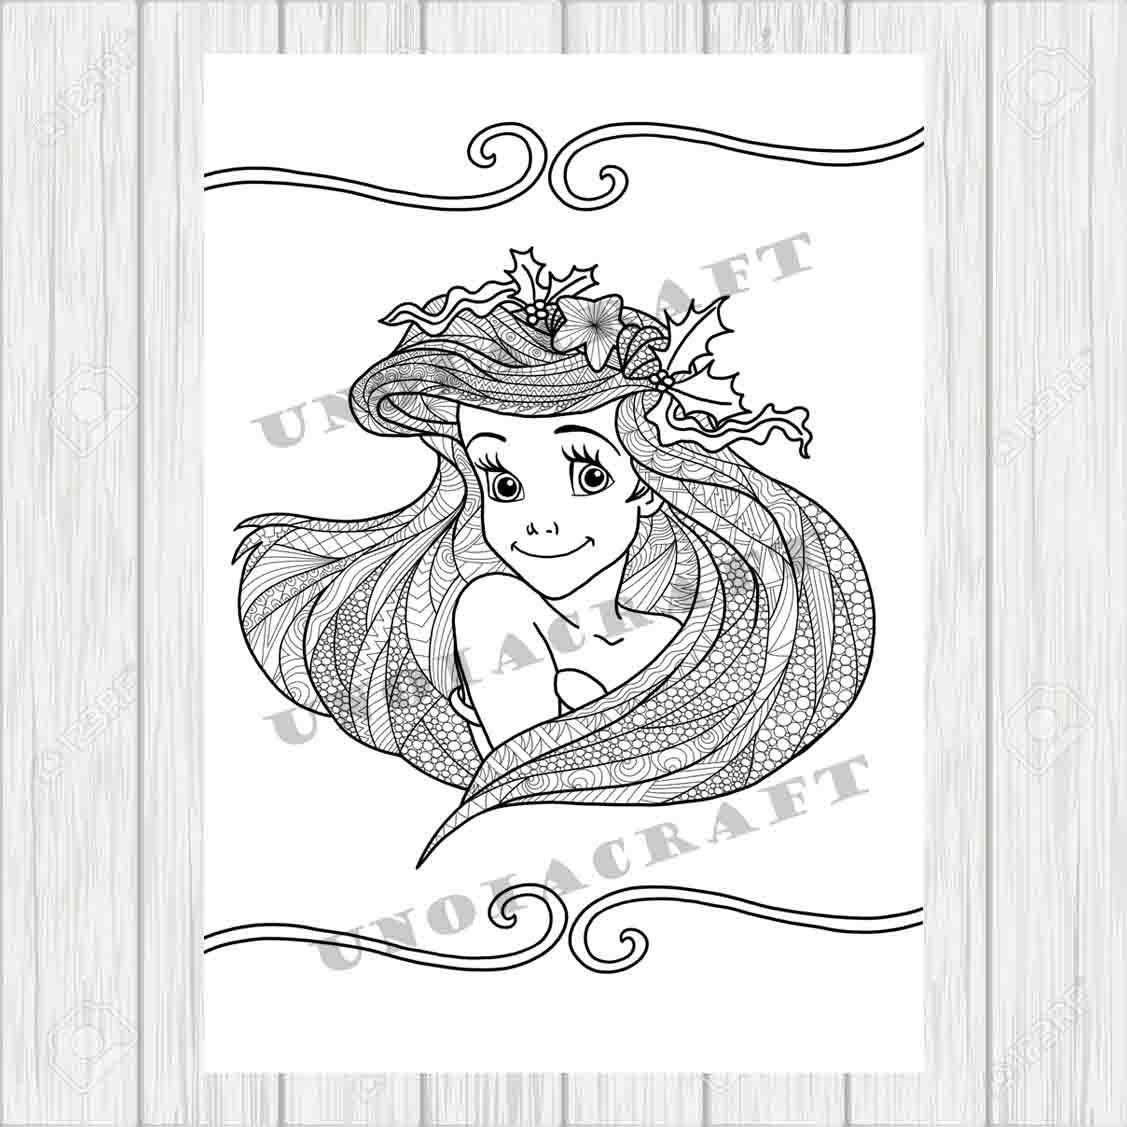 Mermaid coloring kid coloring page kids coloring sheet coloring